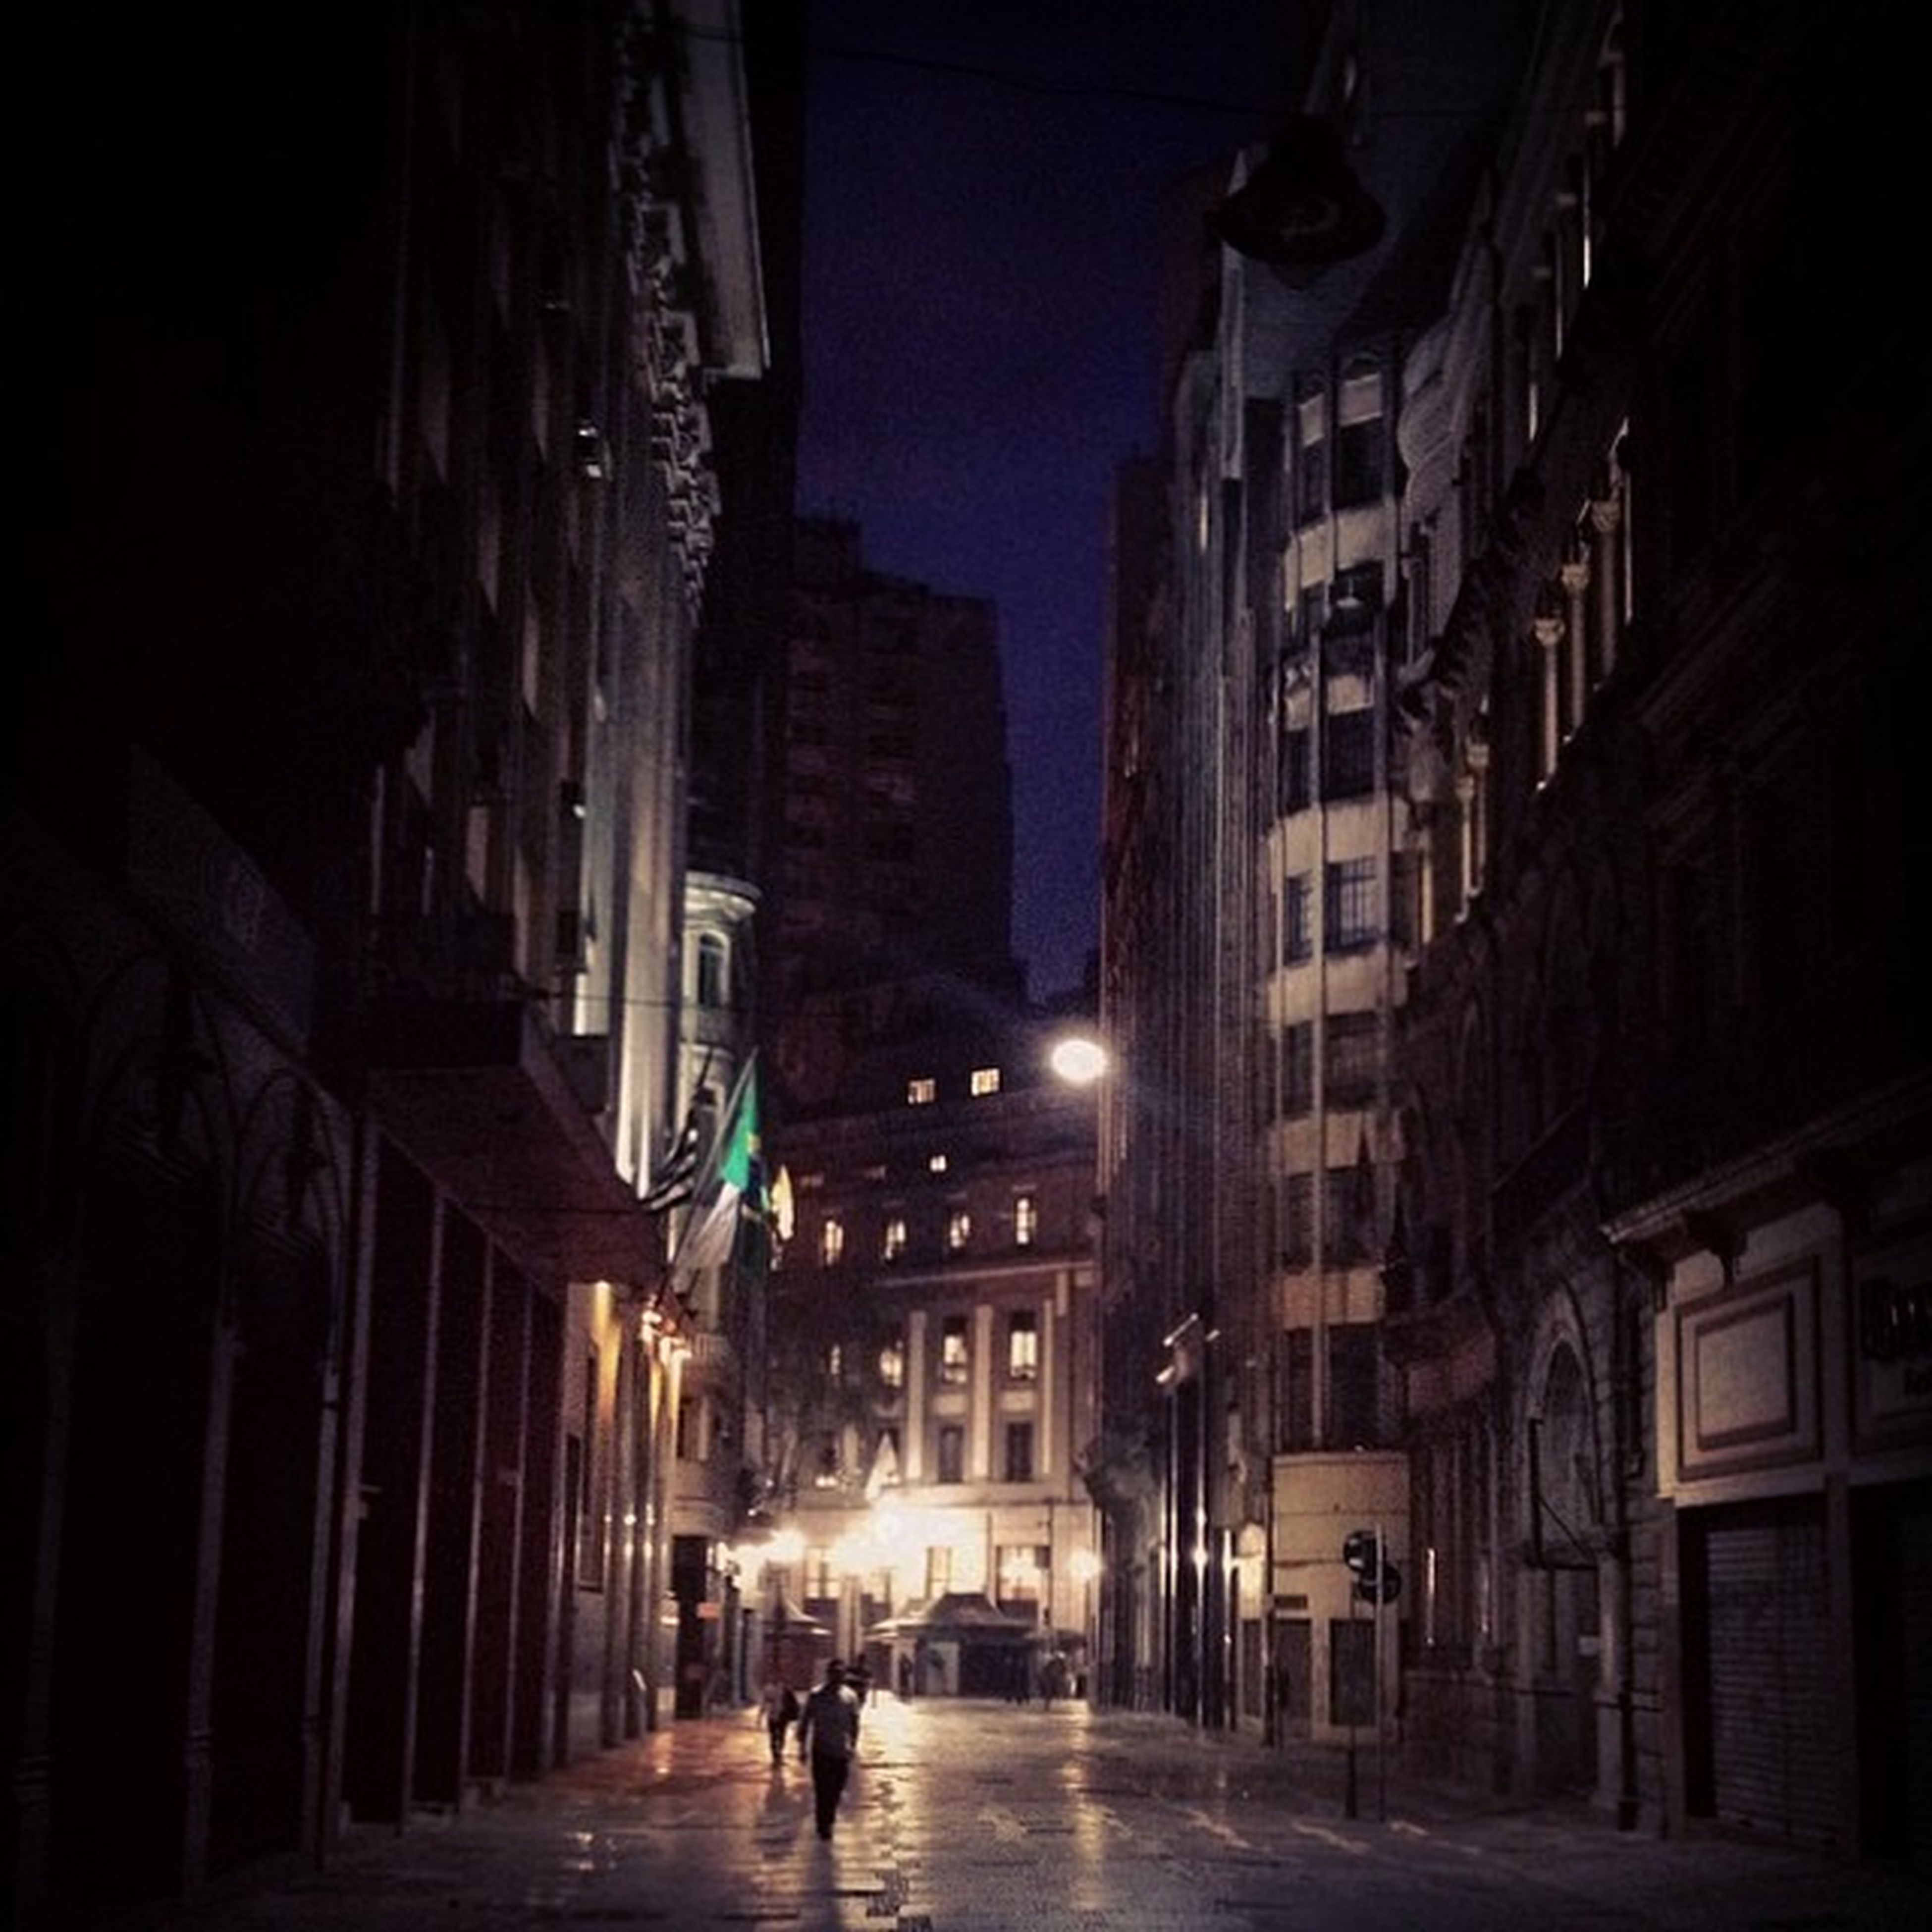 building exterior, architecture, built structure, street, night, city, illuminated, the way forward, street light, city life, road, residential structure, residential building, building, city street, car, transportation, diminishing perspective, incidental people, alley